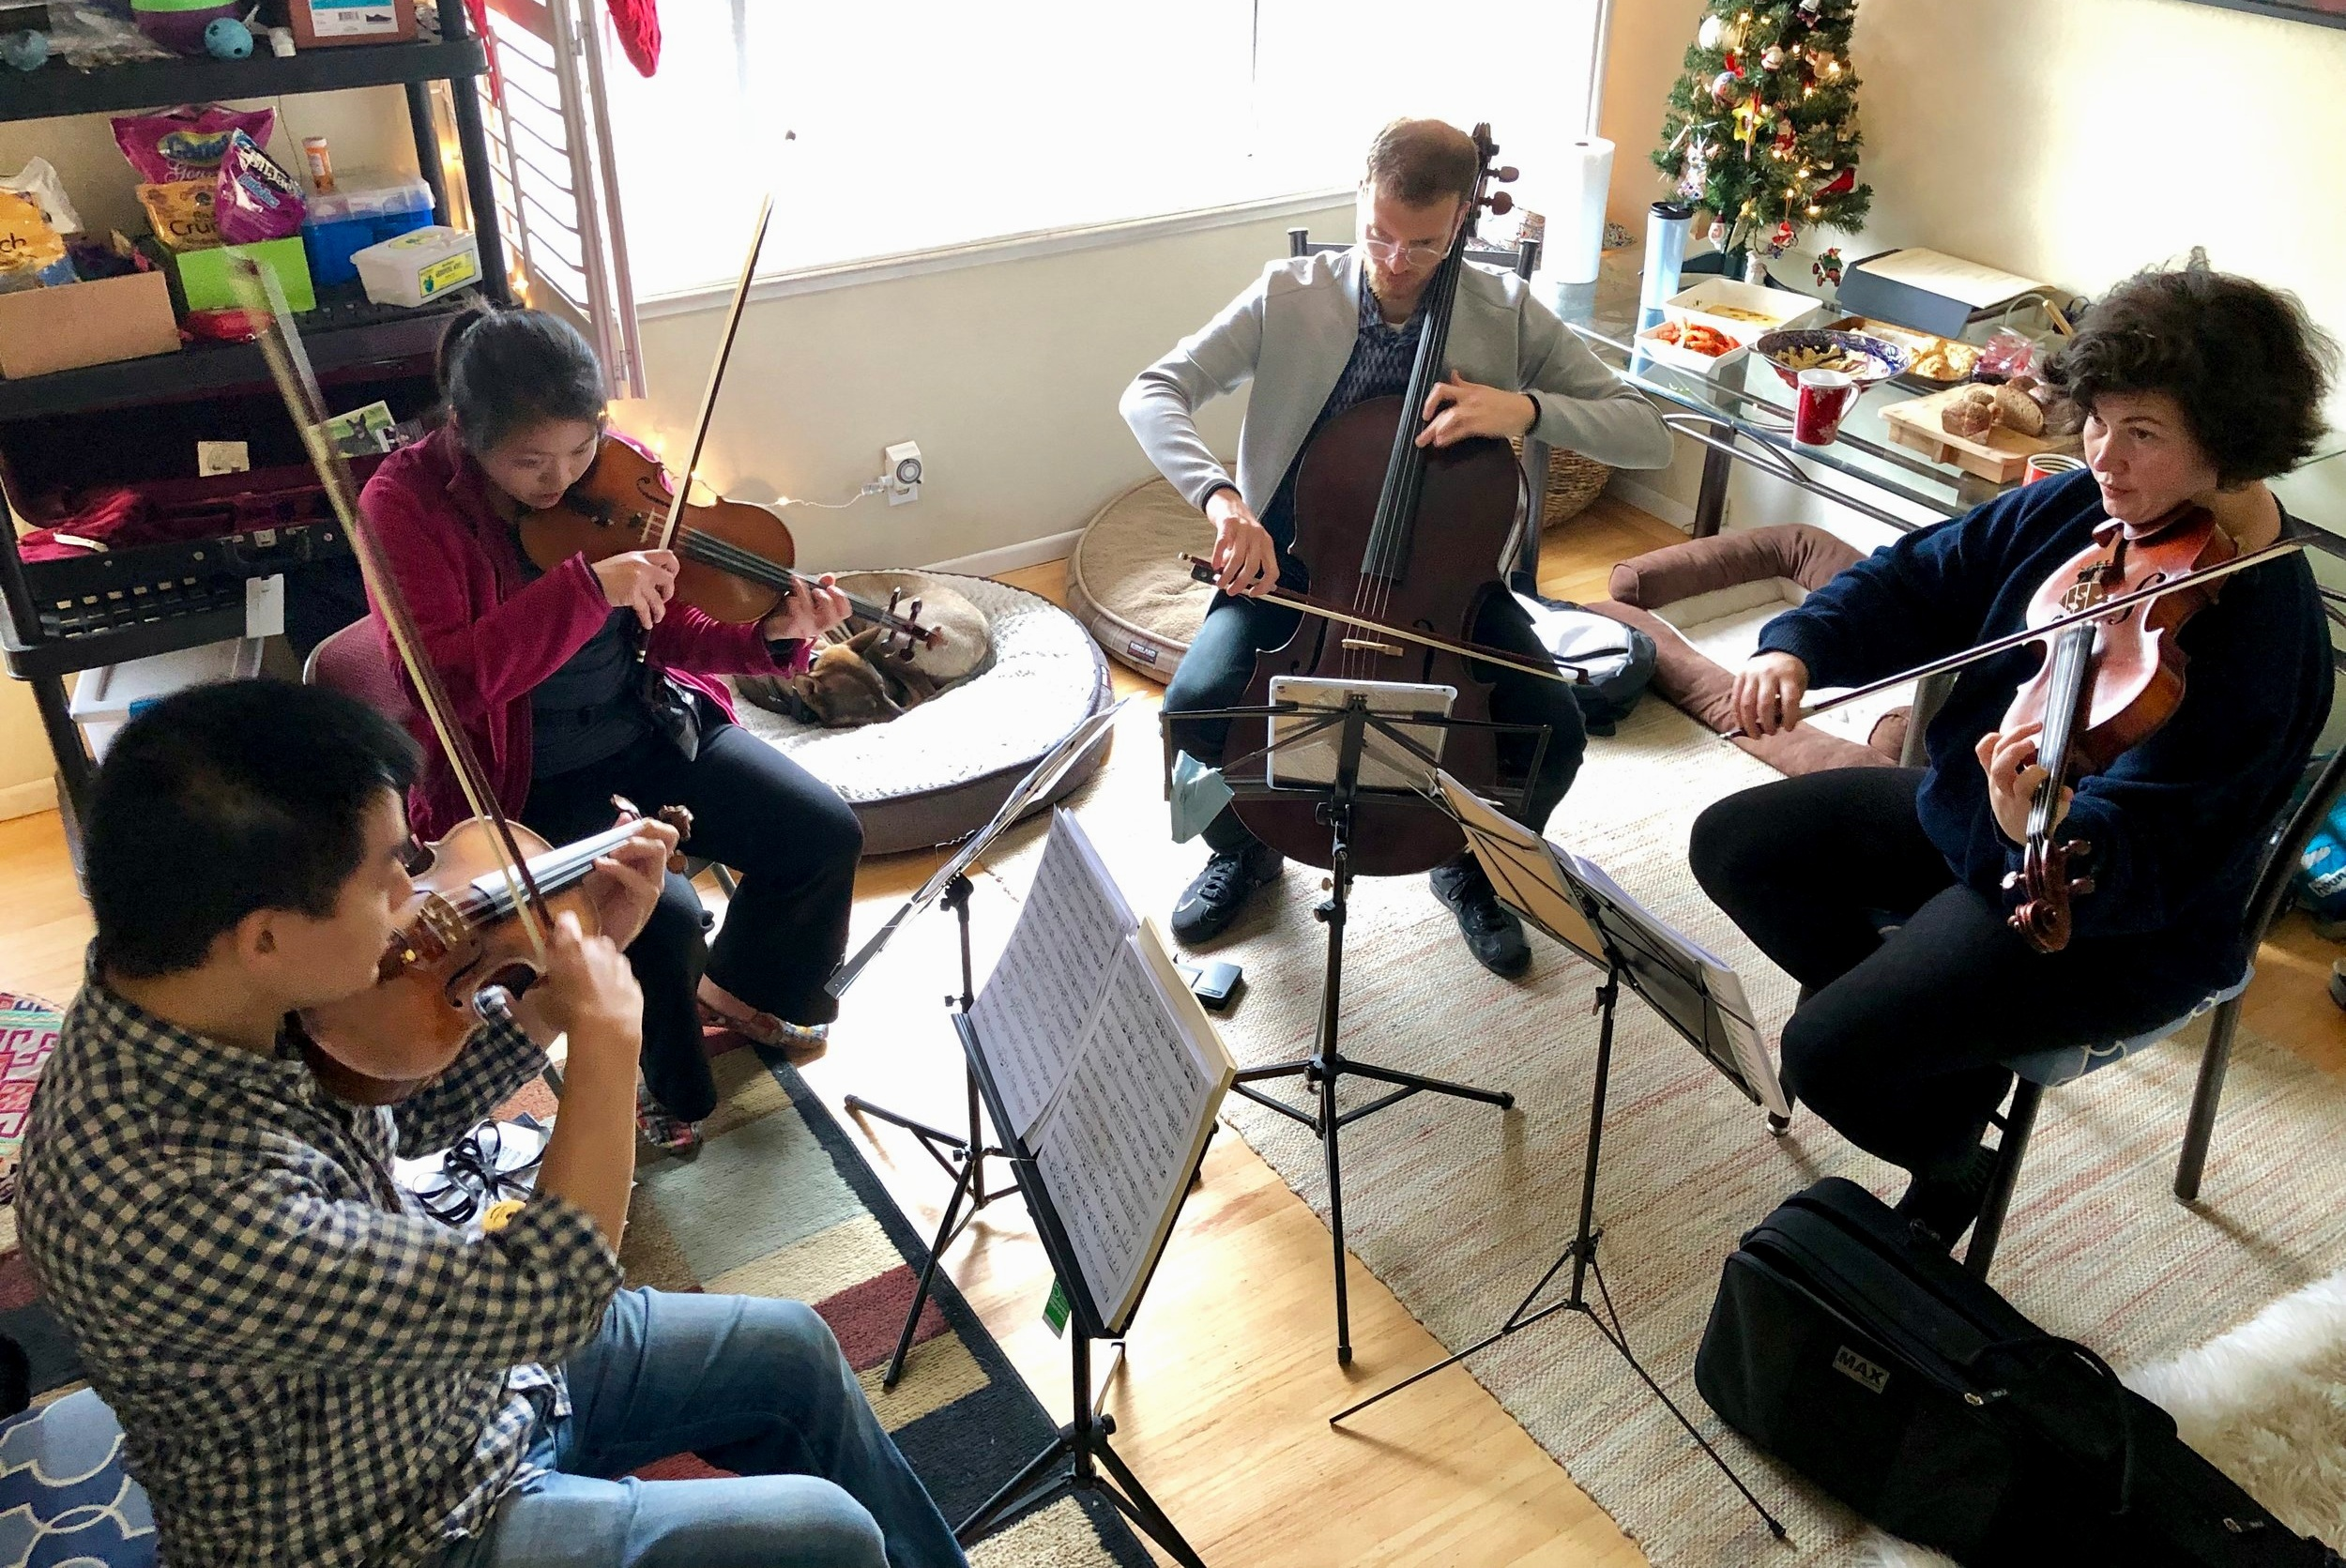 Our Quartet in rehearsal, complete with food and sleeping dogs. From left to right: Elbert Tsai, Rochelle Nguyen, James Jaffe, and Christina Simpson.